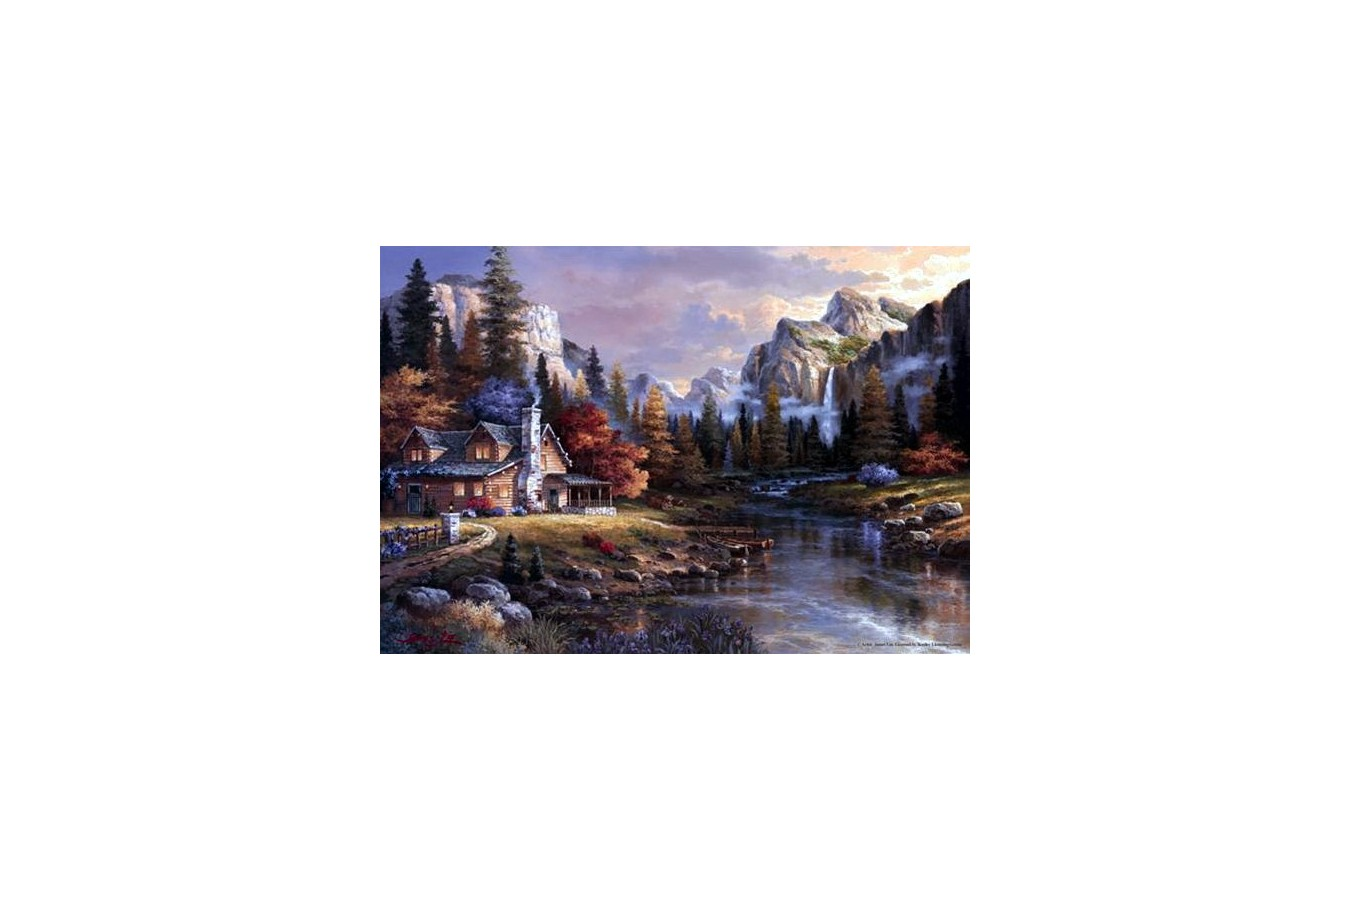 Puzzle Anatolian - Home At Last, 500 piese (3533)